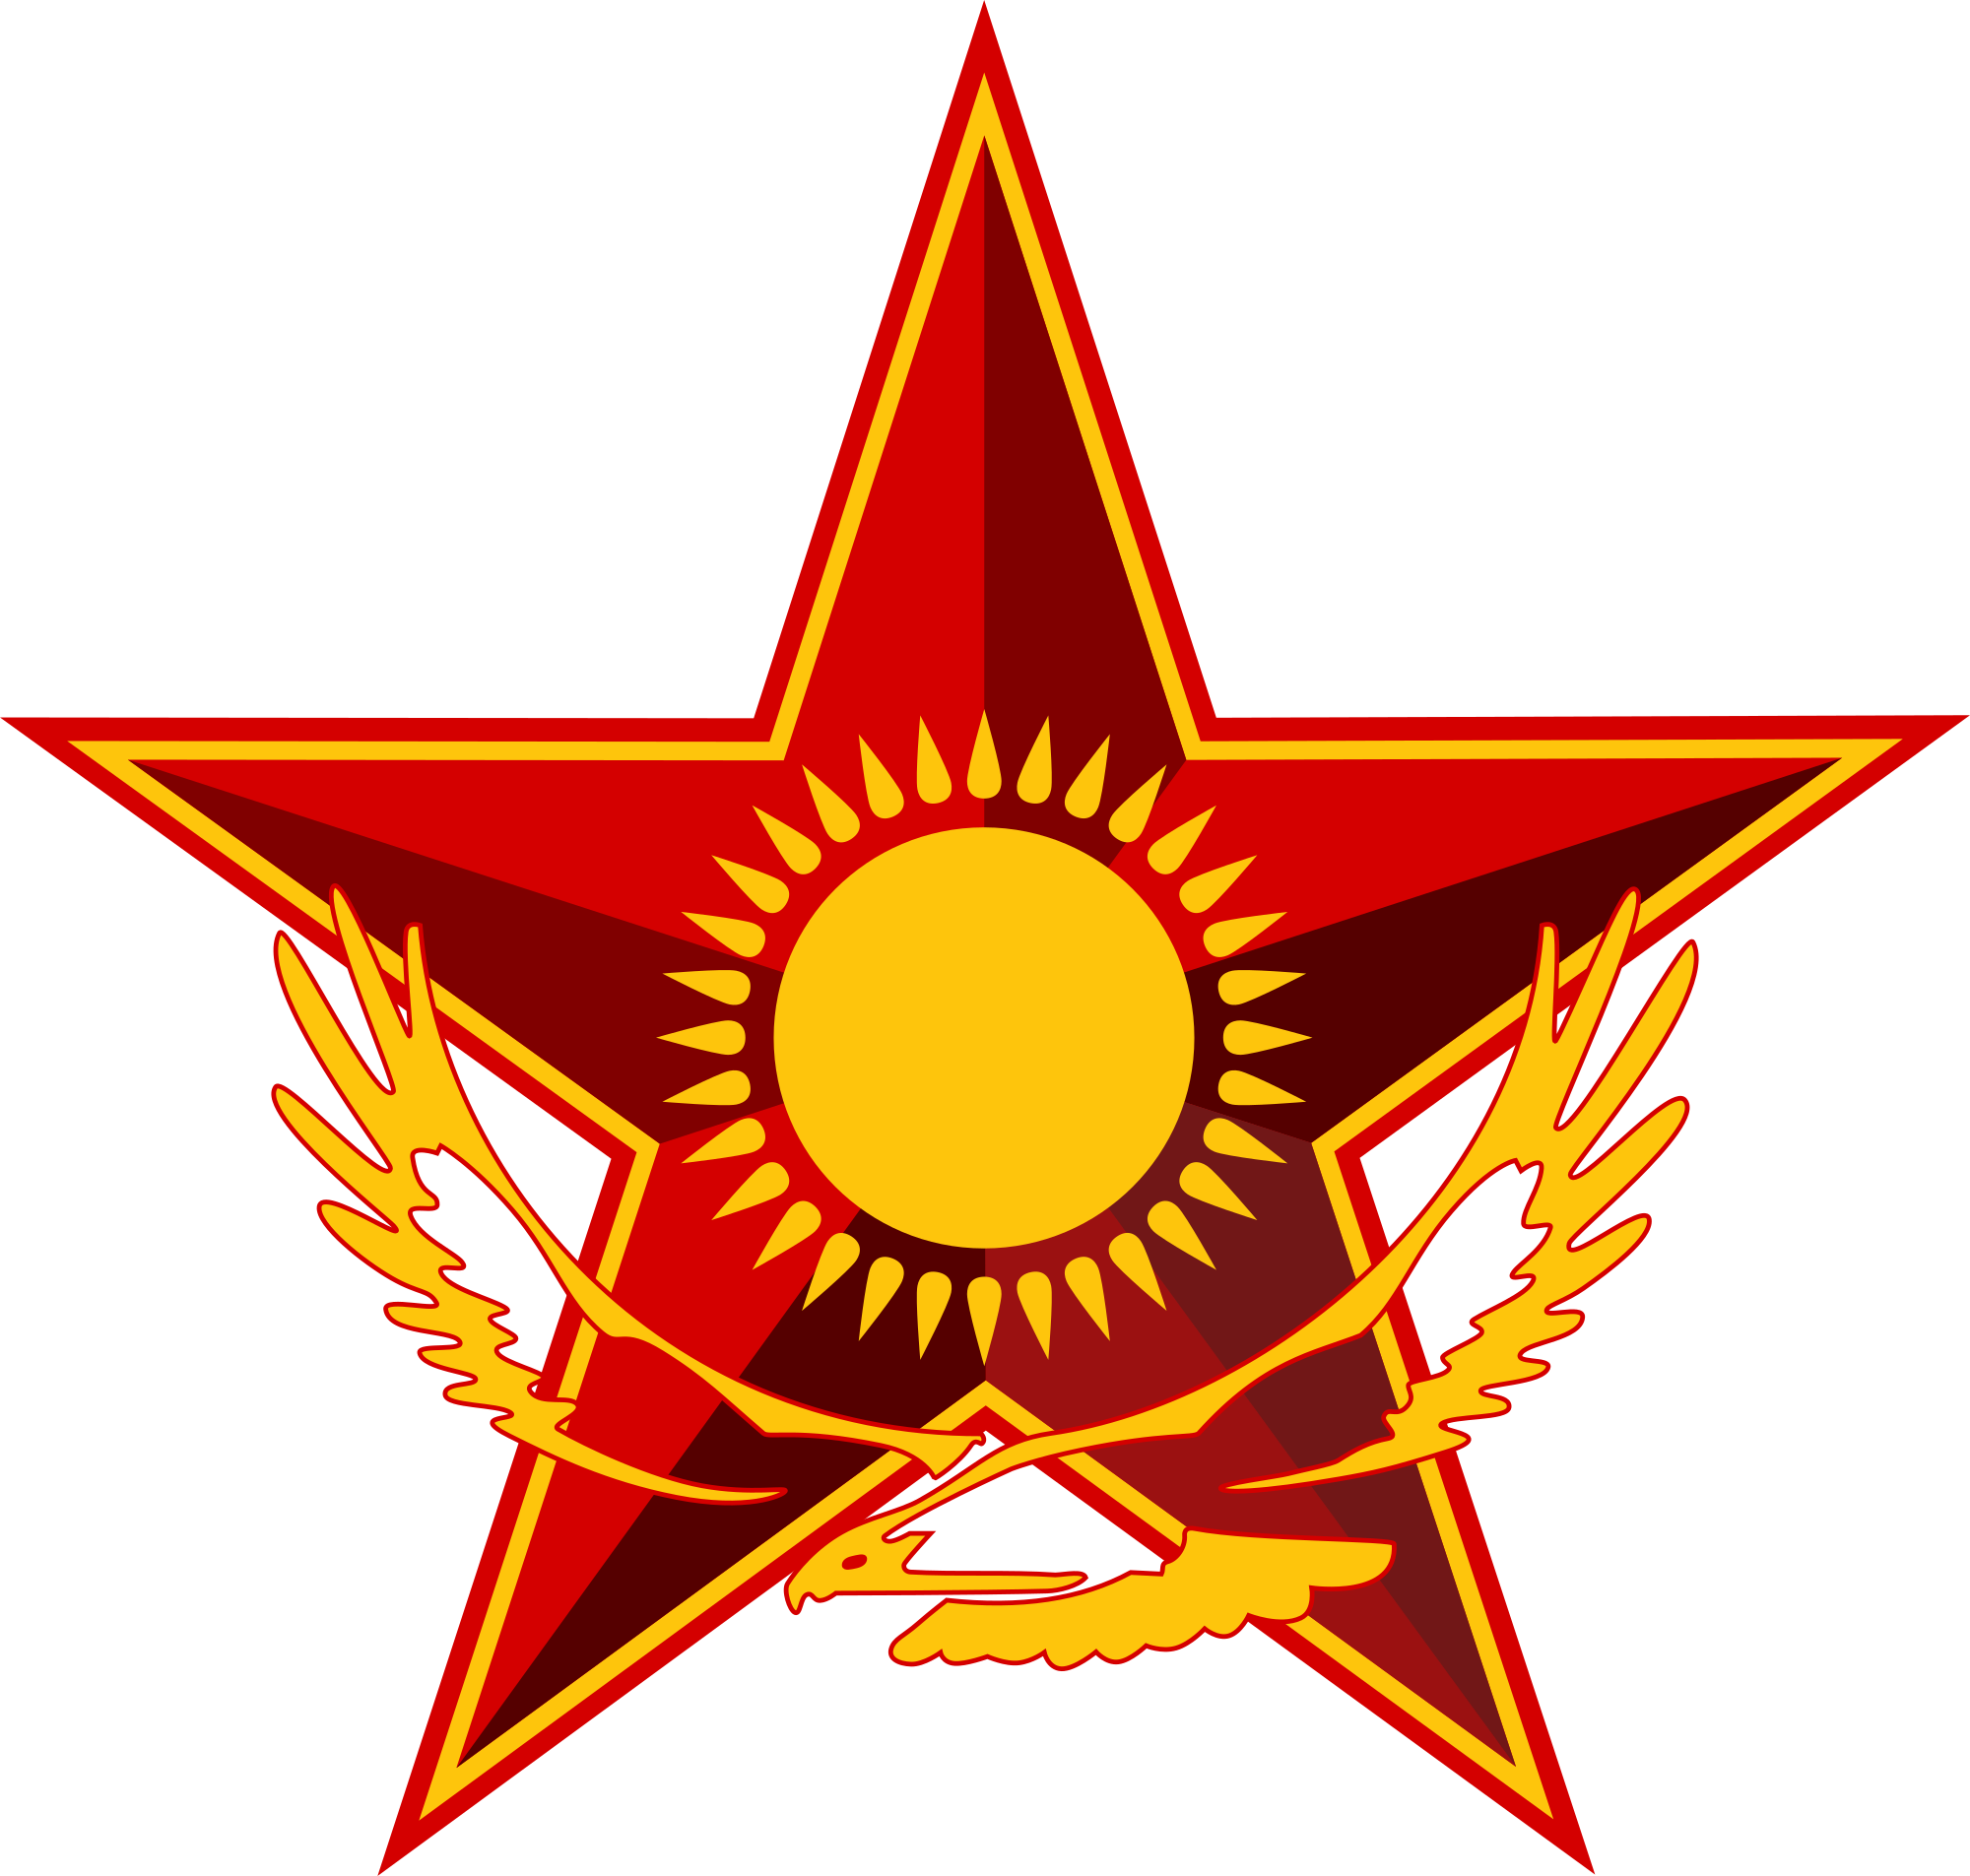 Clipart mod red star picture royalty free stock Ministry of Defense of Kazakhstan - Wikipedia picture royalty free stock